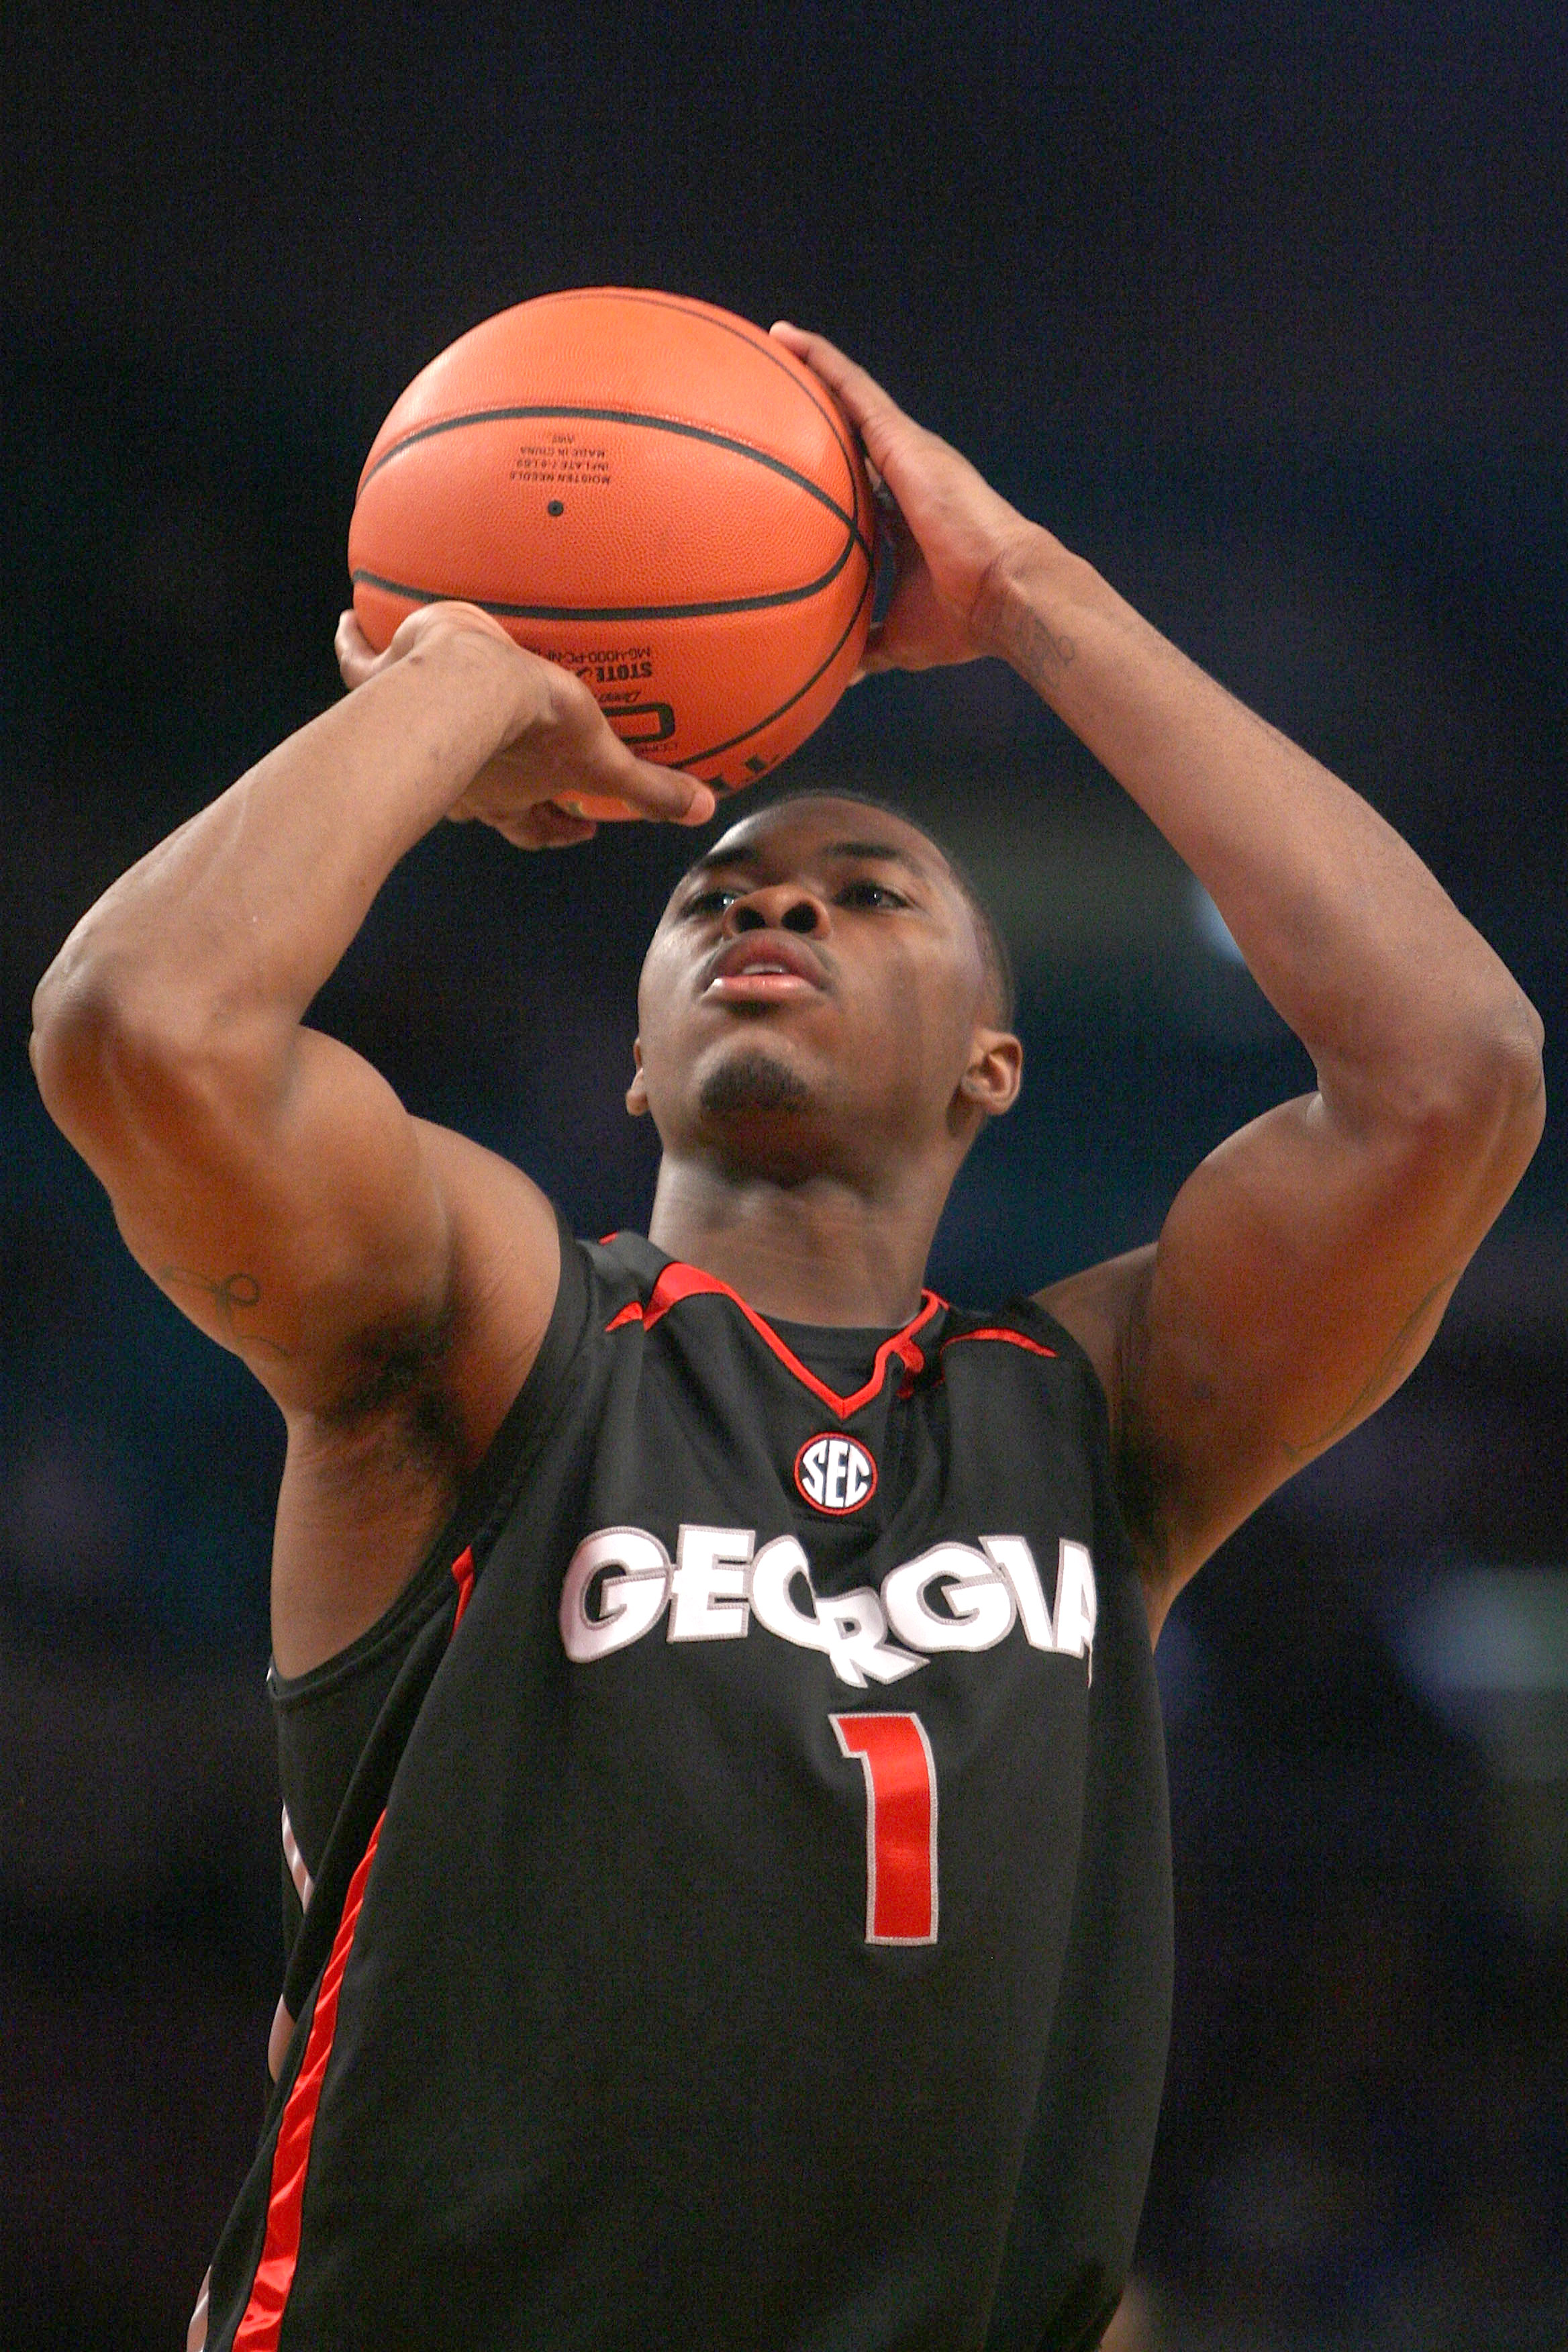 NEW YORK - DECEMBER 09:  Travis Leslie #1 of the Georgia Bulldogs shoots a free throw against the St. John's Red Storm during the SEC Big East Invitational at Madison Square Garden on December 9, 2009 in New York, New York. The Red Storm defeated the Bull